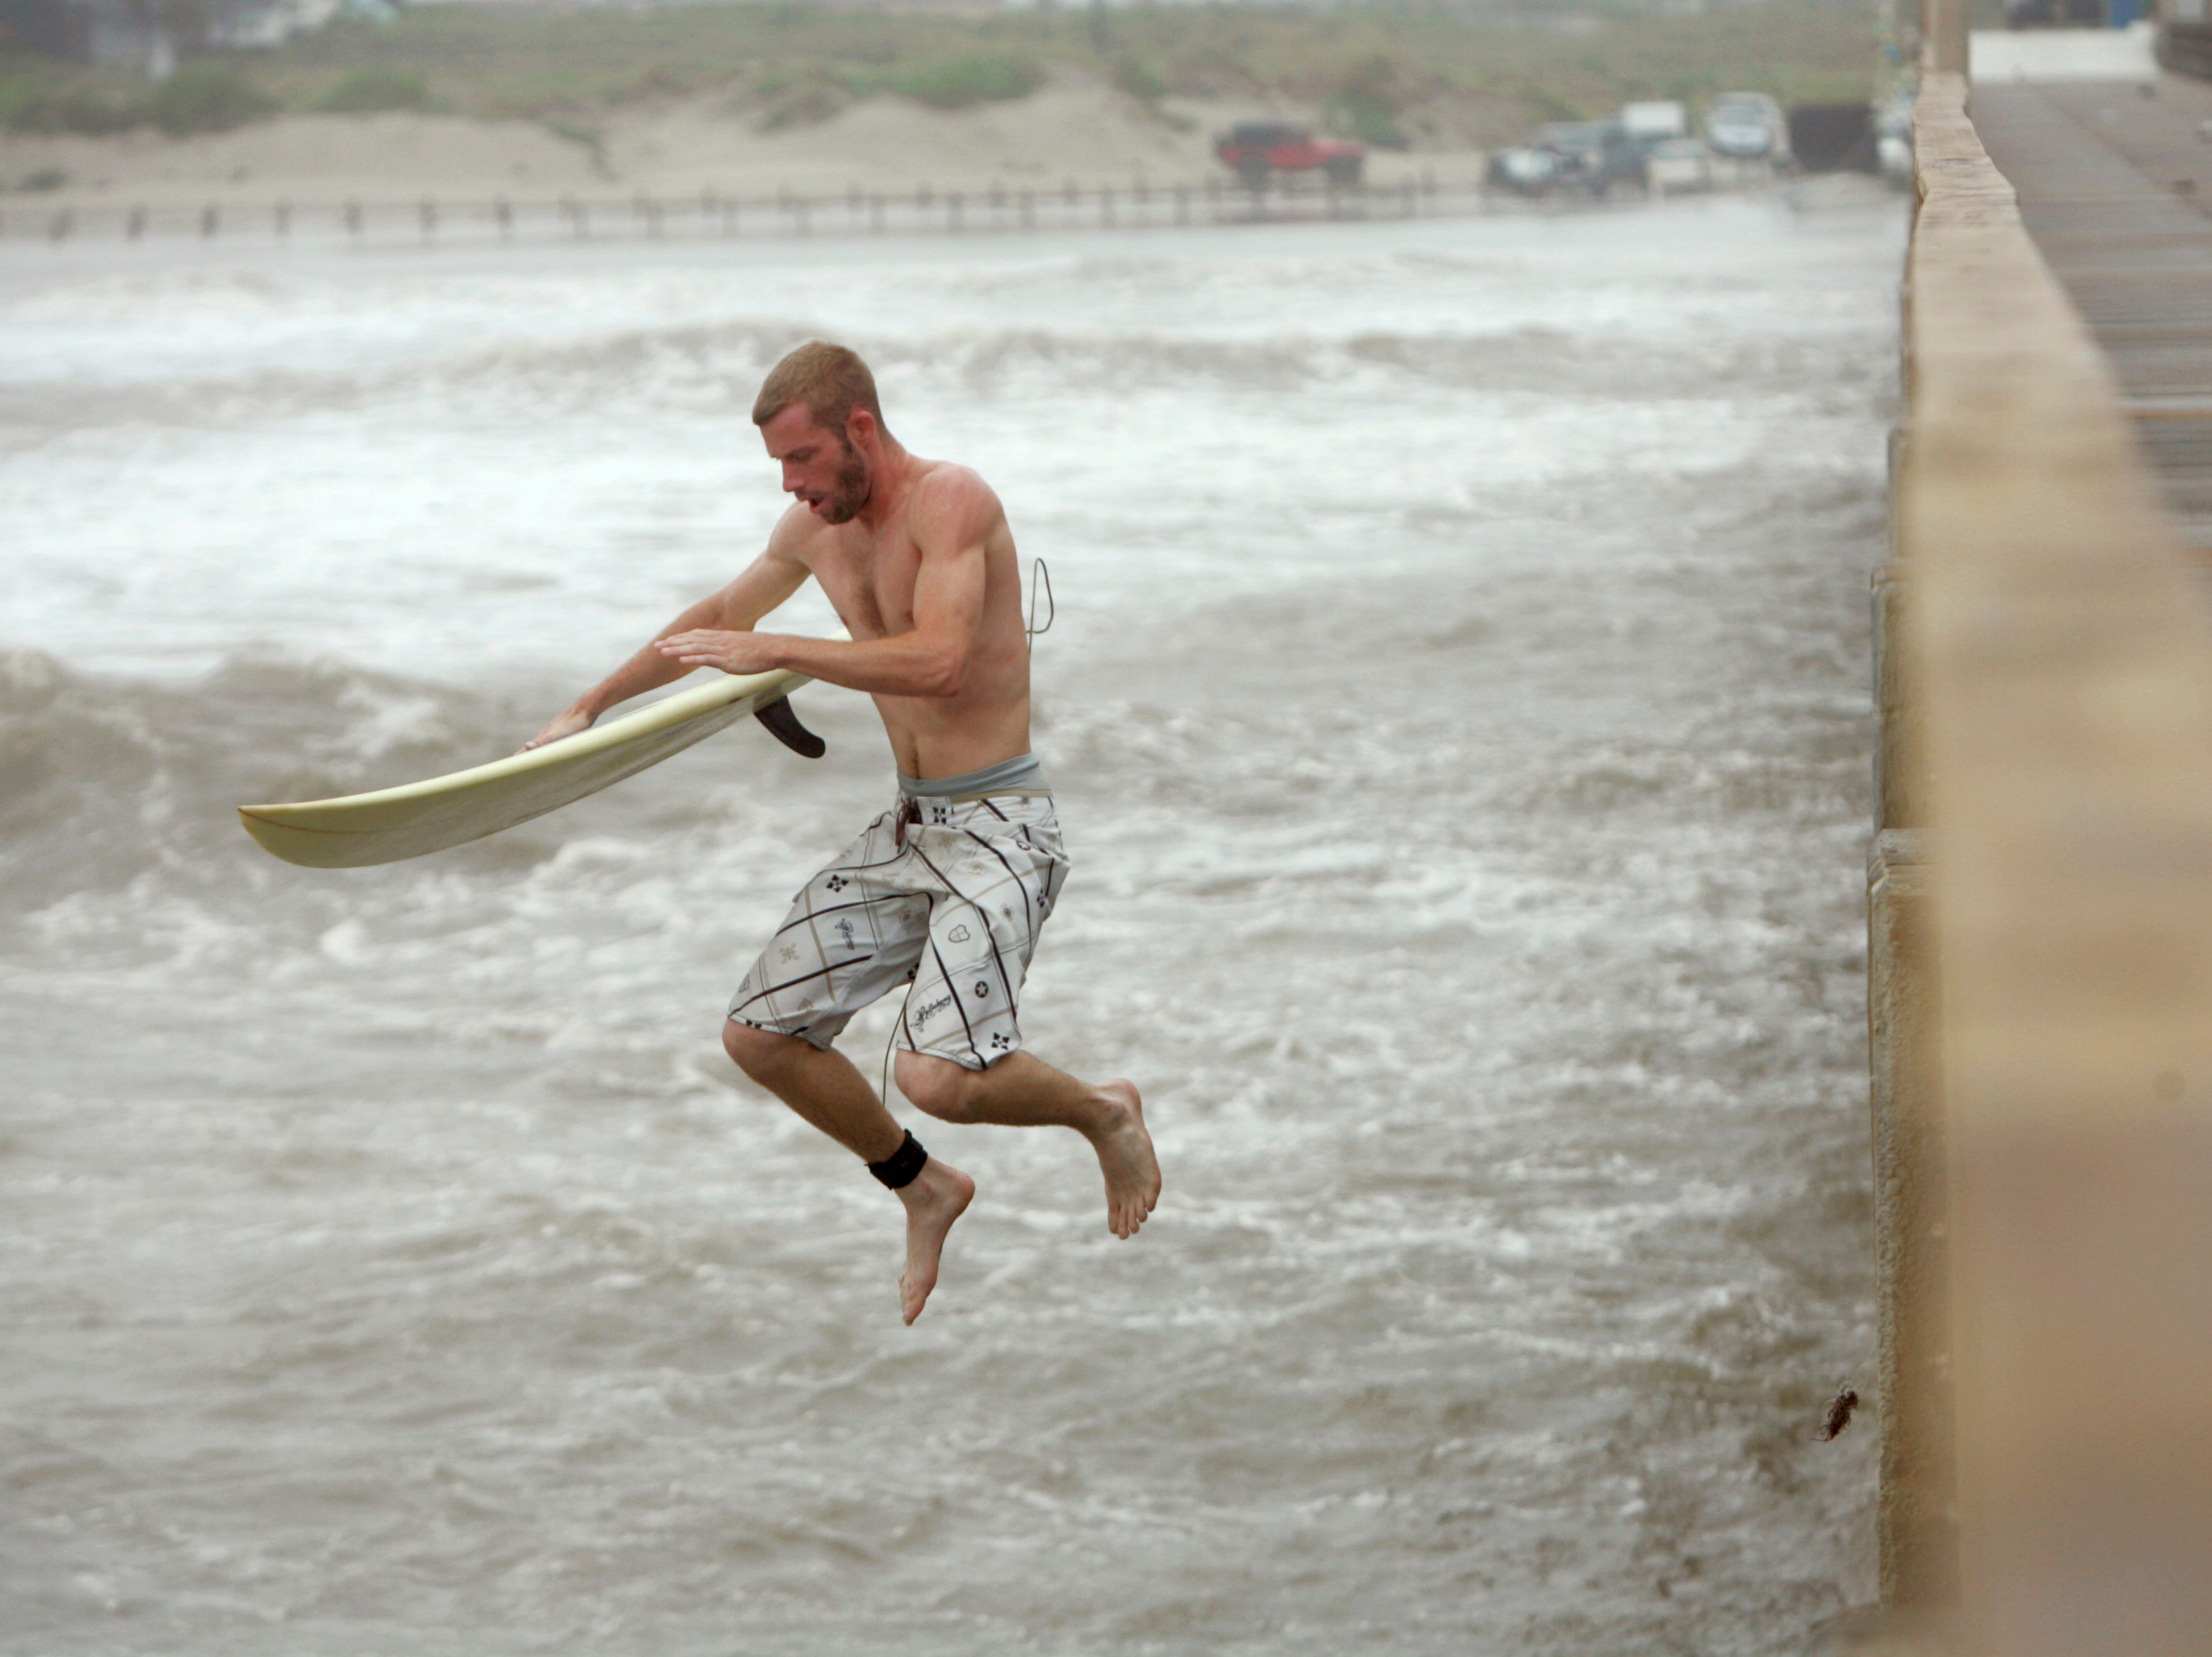 Chris Wilson of Alexandria, La., leaps off the pier Wednesday, June 30, 2010 as surfers take advantage of the big waves from Hurricane Alex at Horace Caldwell Pier in Port Aransas. Wilson said he drove down from Louisiana Tuesday just to come out and surf in the waves produced by the first hurricane of the season.